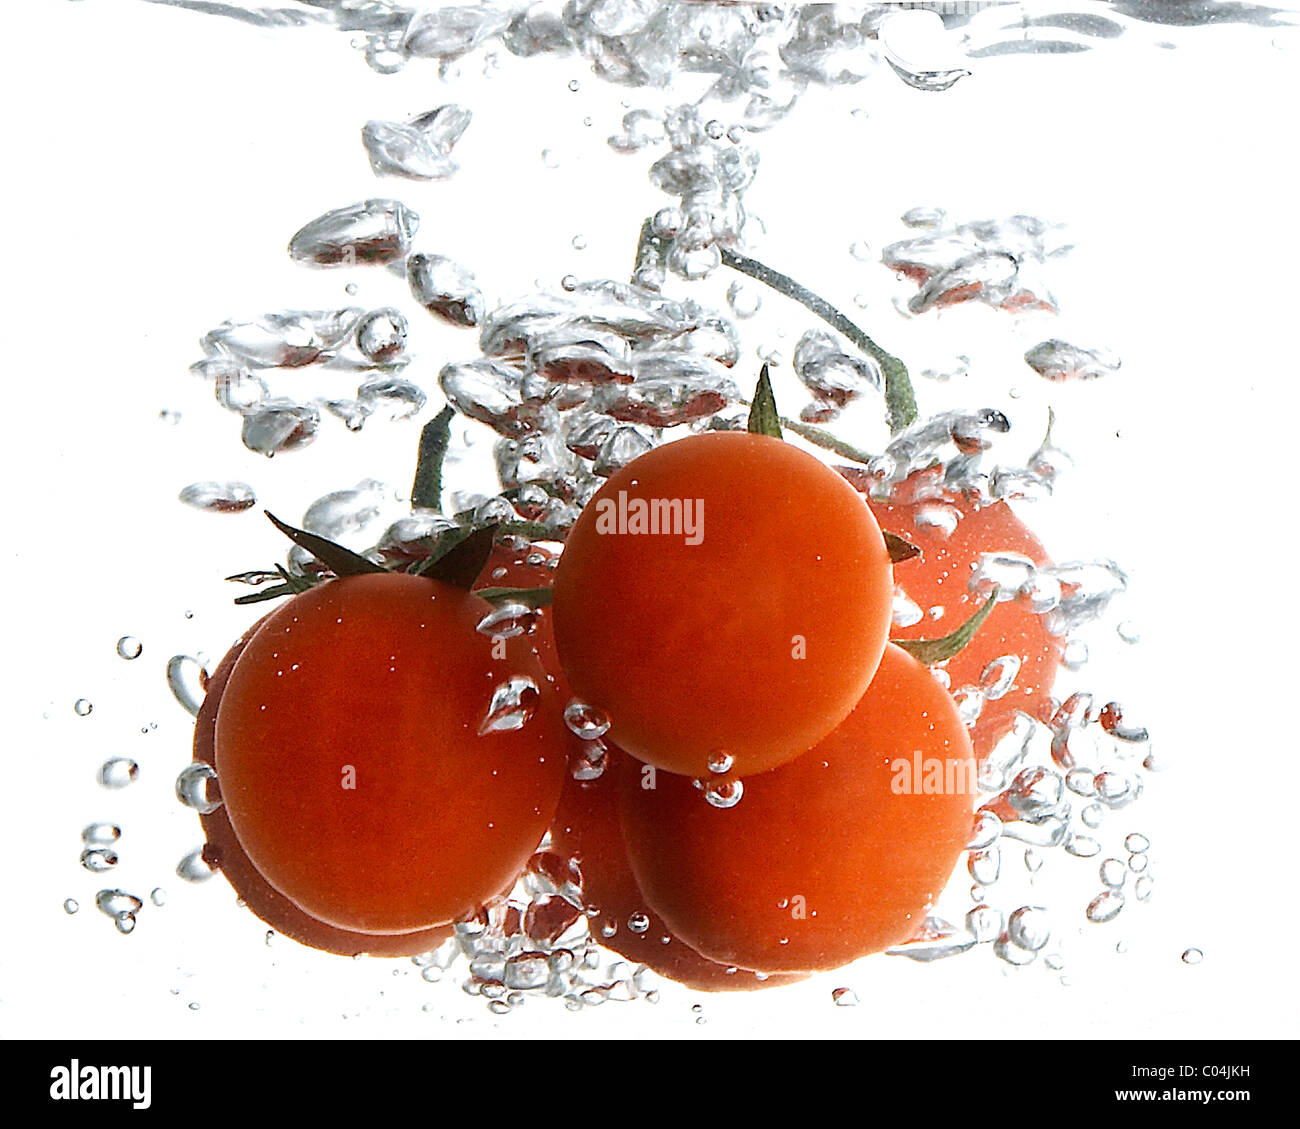 Some red round tomatoes in the water - Stock Image